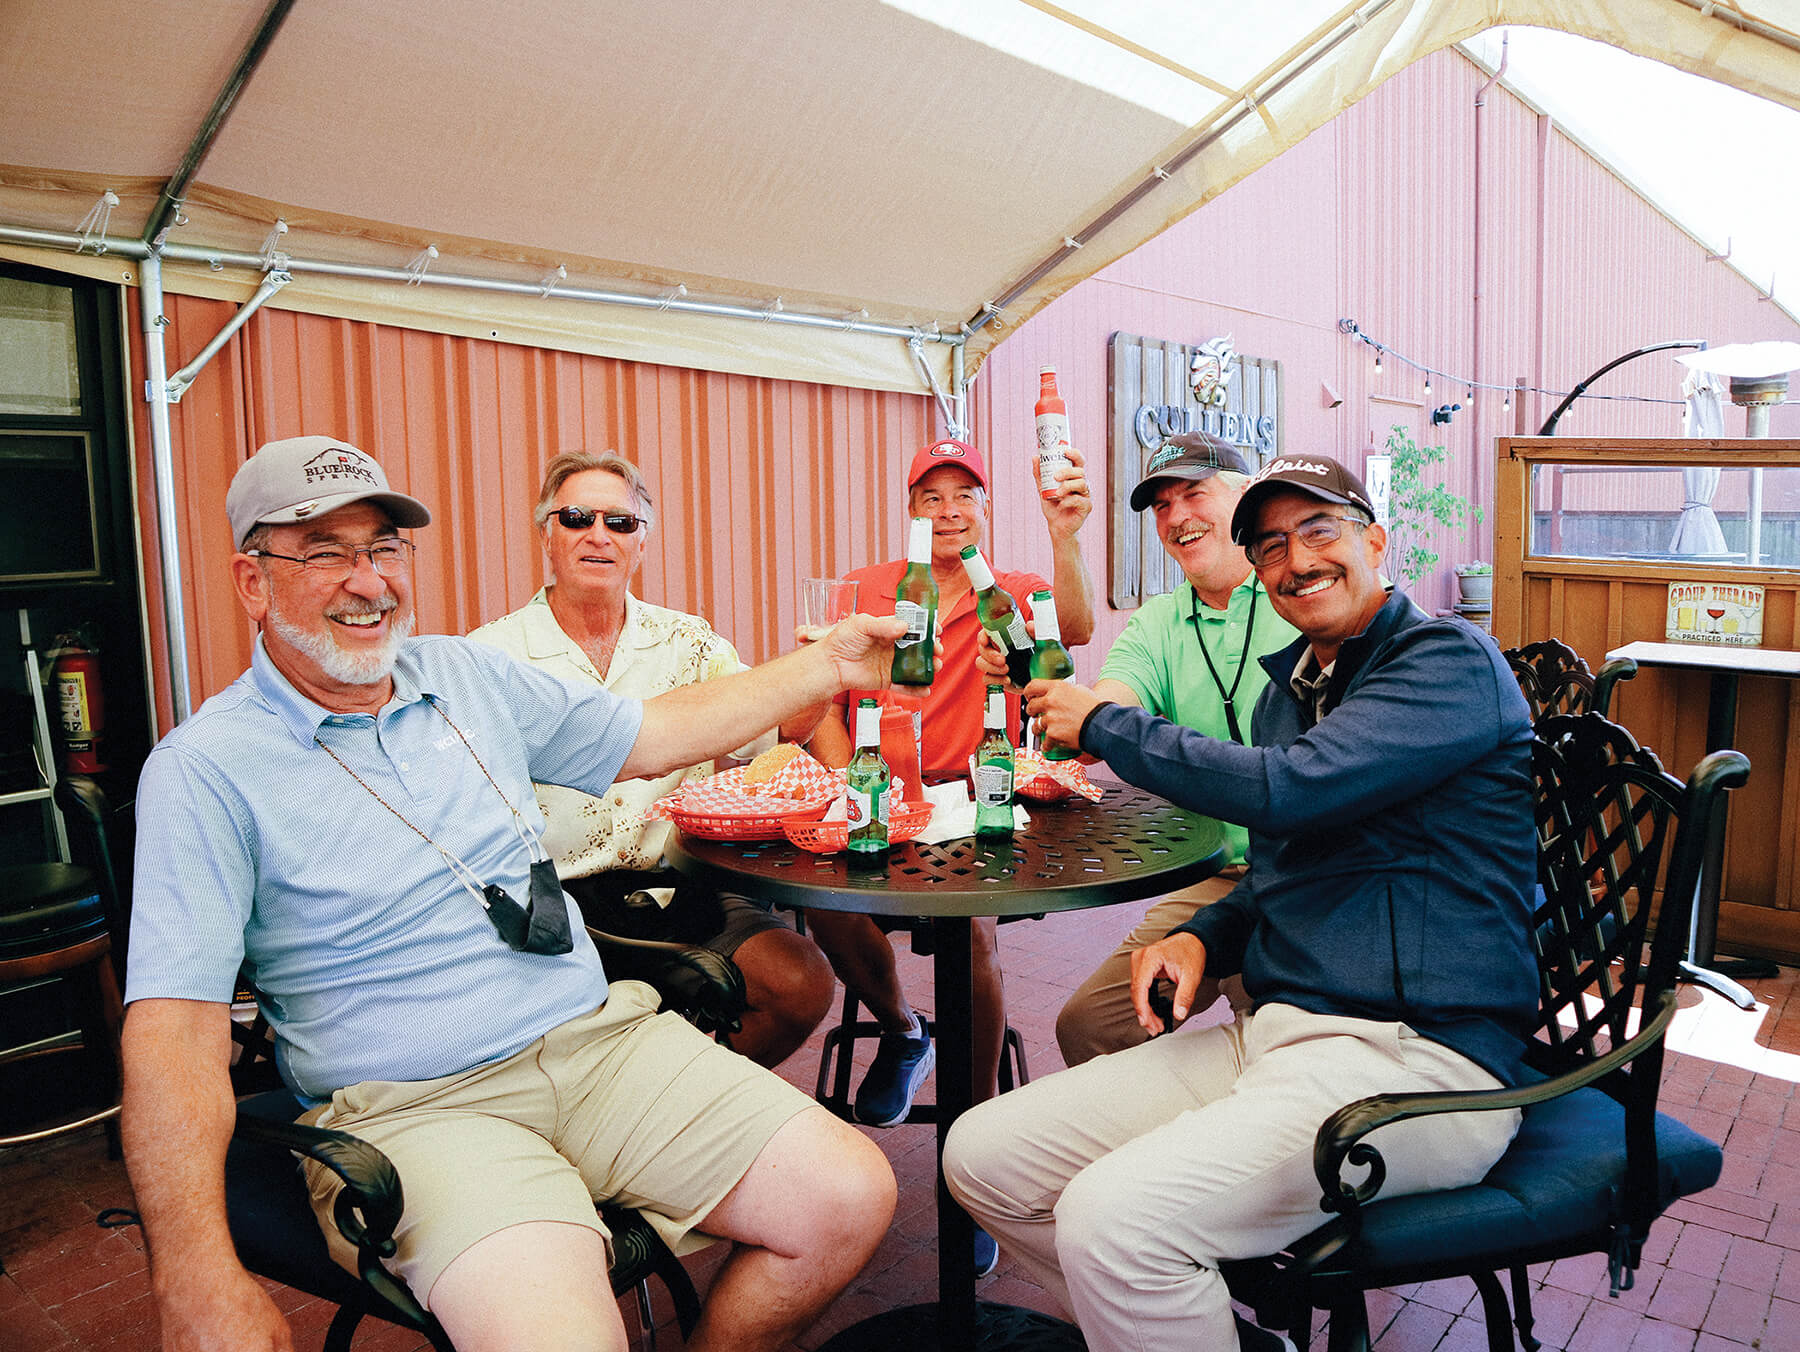 A group dining on Char's Hotdogs at Cullen's pub cheers